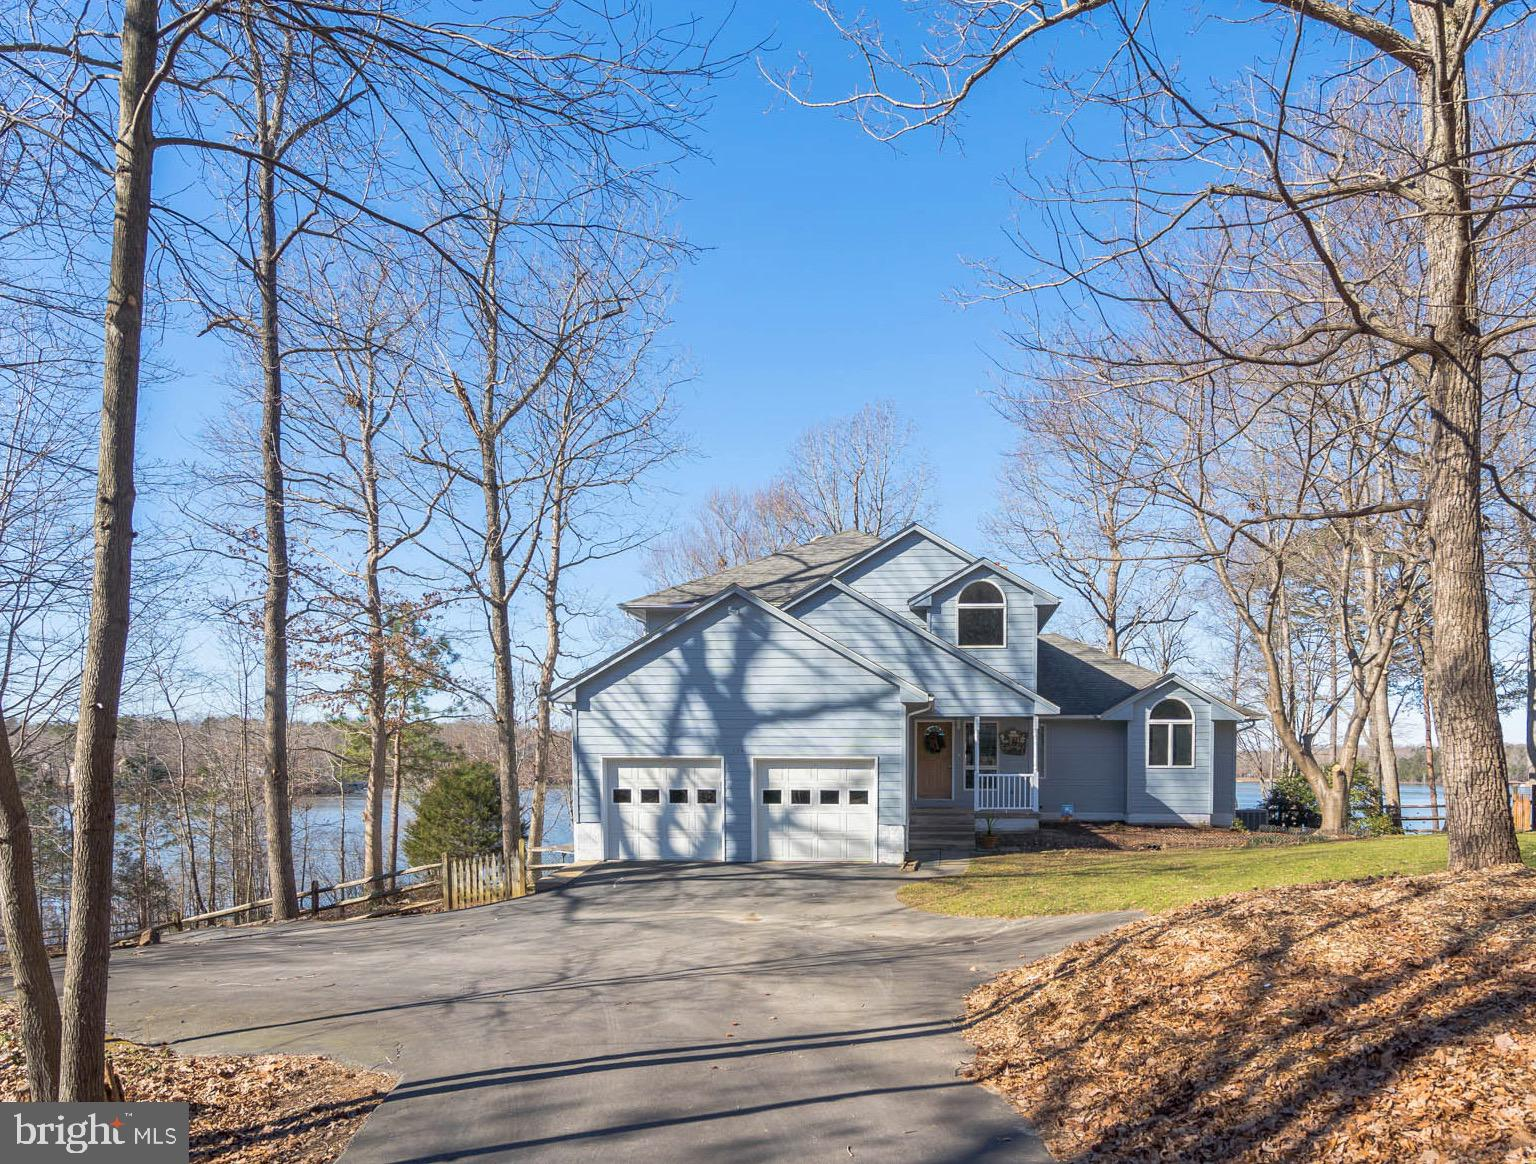 154 PINE POINT PLACE, MINERAL, VA 23117